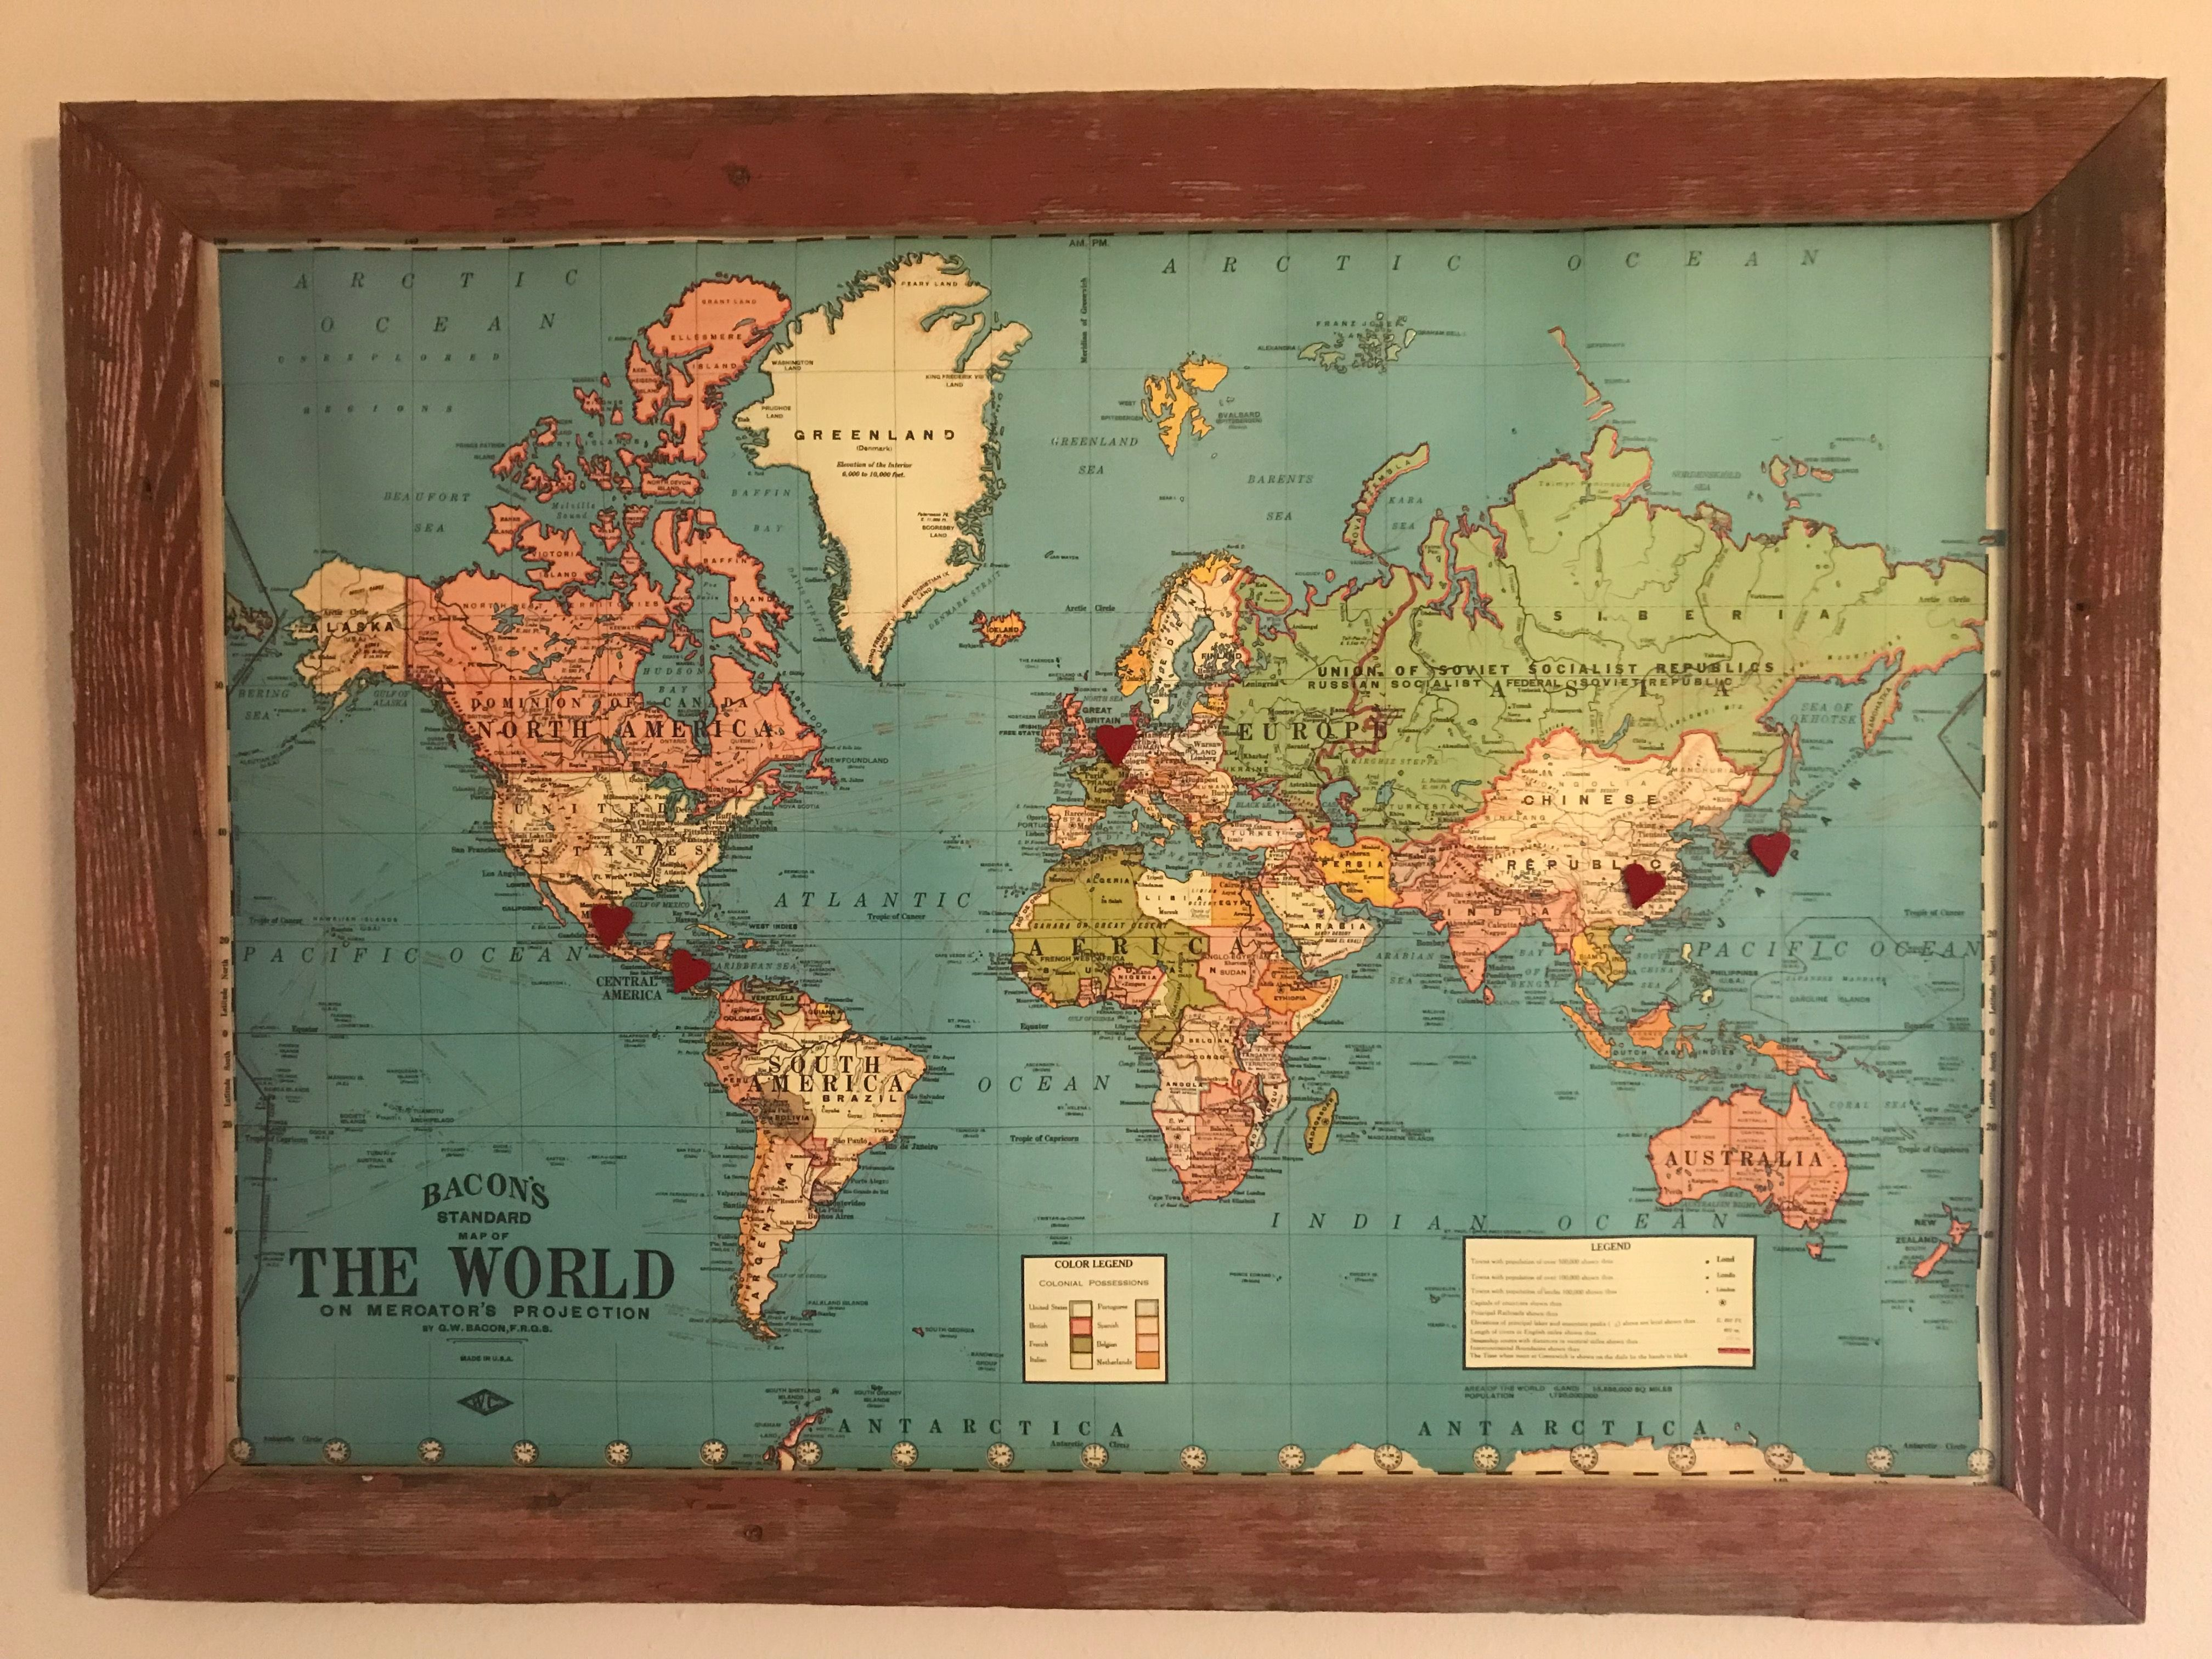 Framed Magnetic World Map.A World Map Backed With Metal And Framed With Old Barn Wood